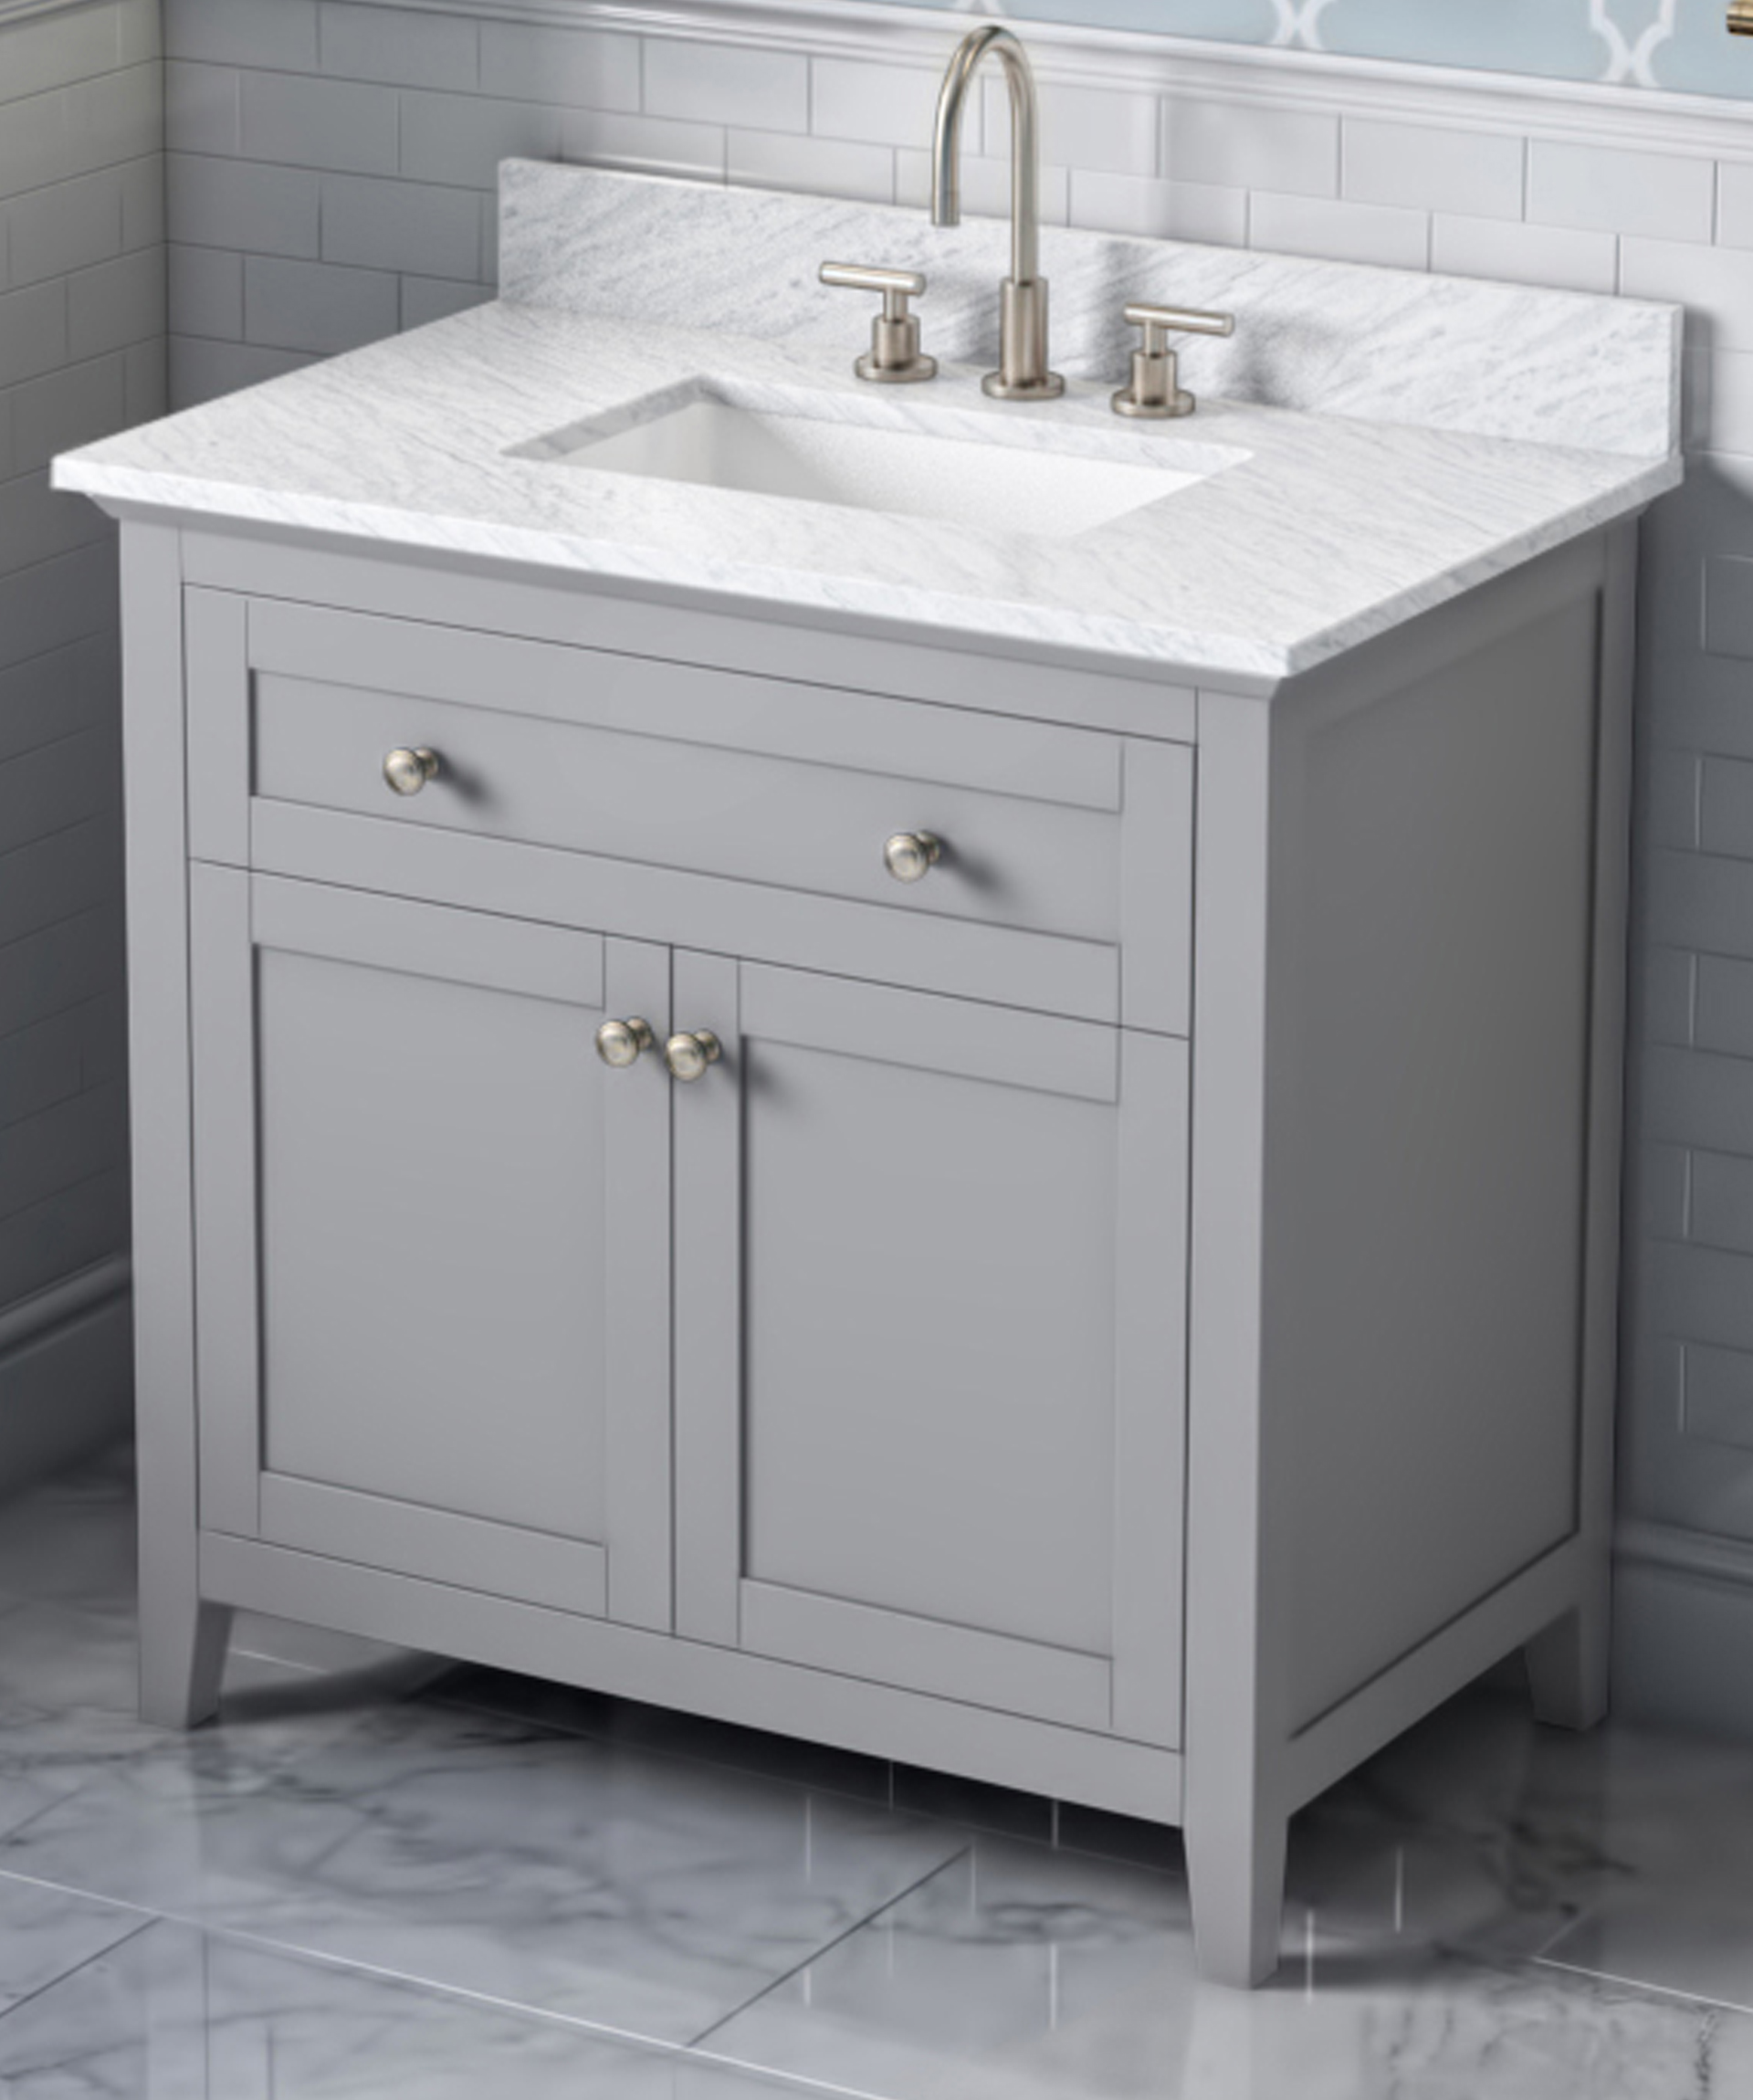 "30"" Single Sink Bathroom Vanity Grey Finish, White Carrara Marble Vanity Top, Undermount Rectangle Bowl"